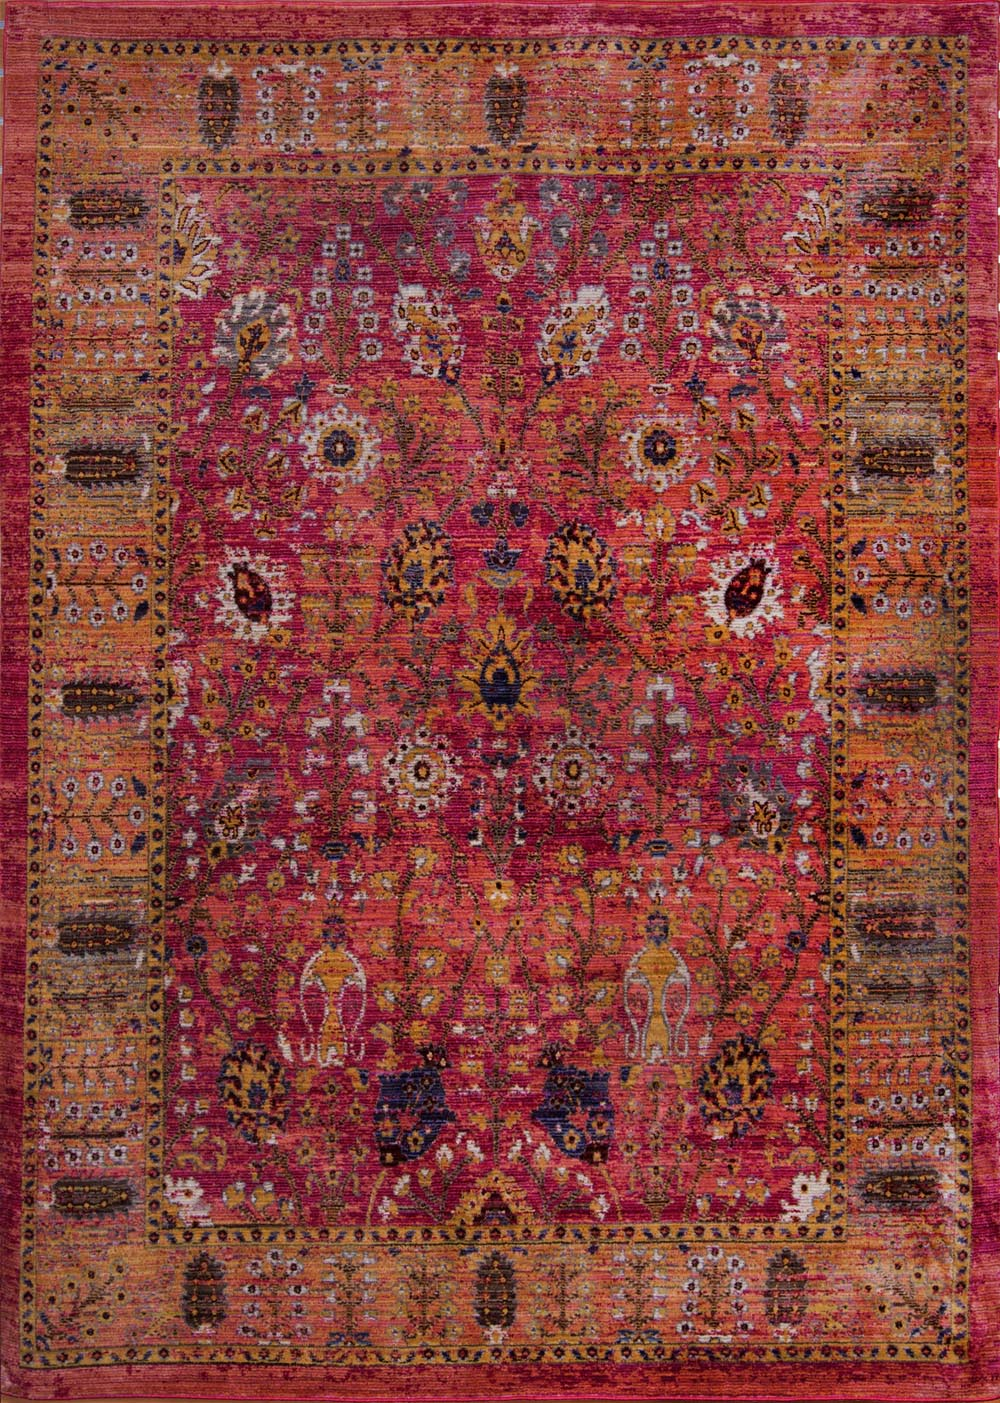 Red Distressed Faded Bordered Area Rug Traditional Persian